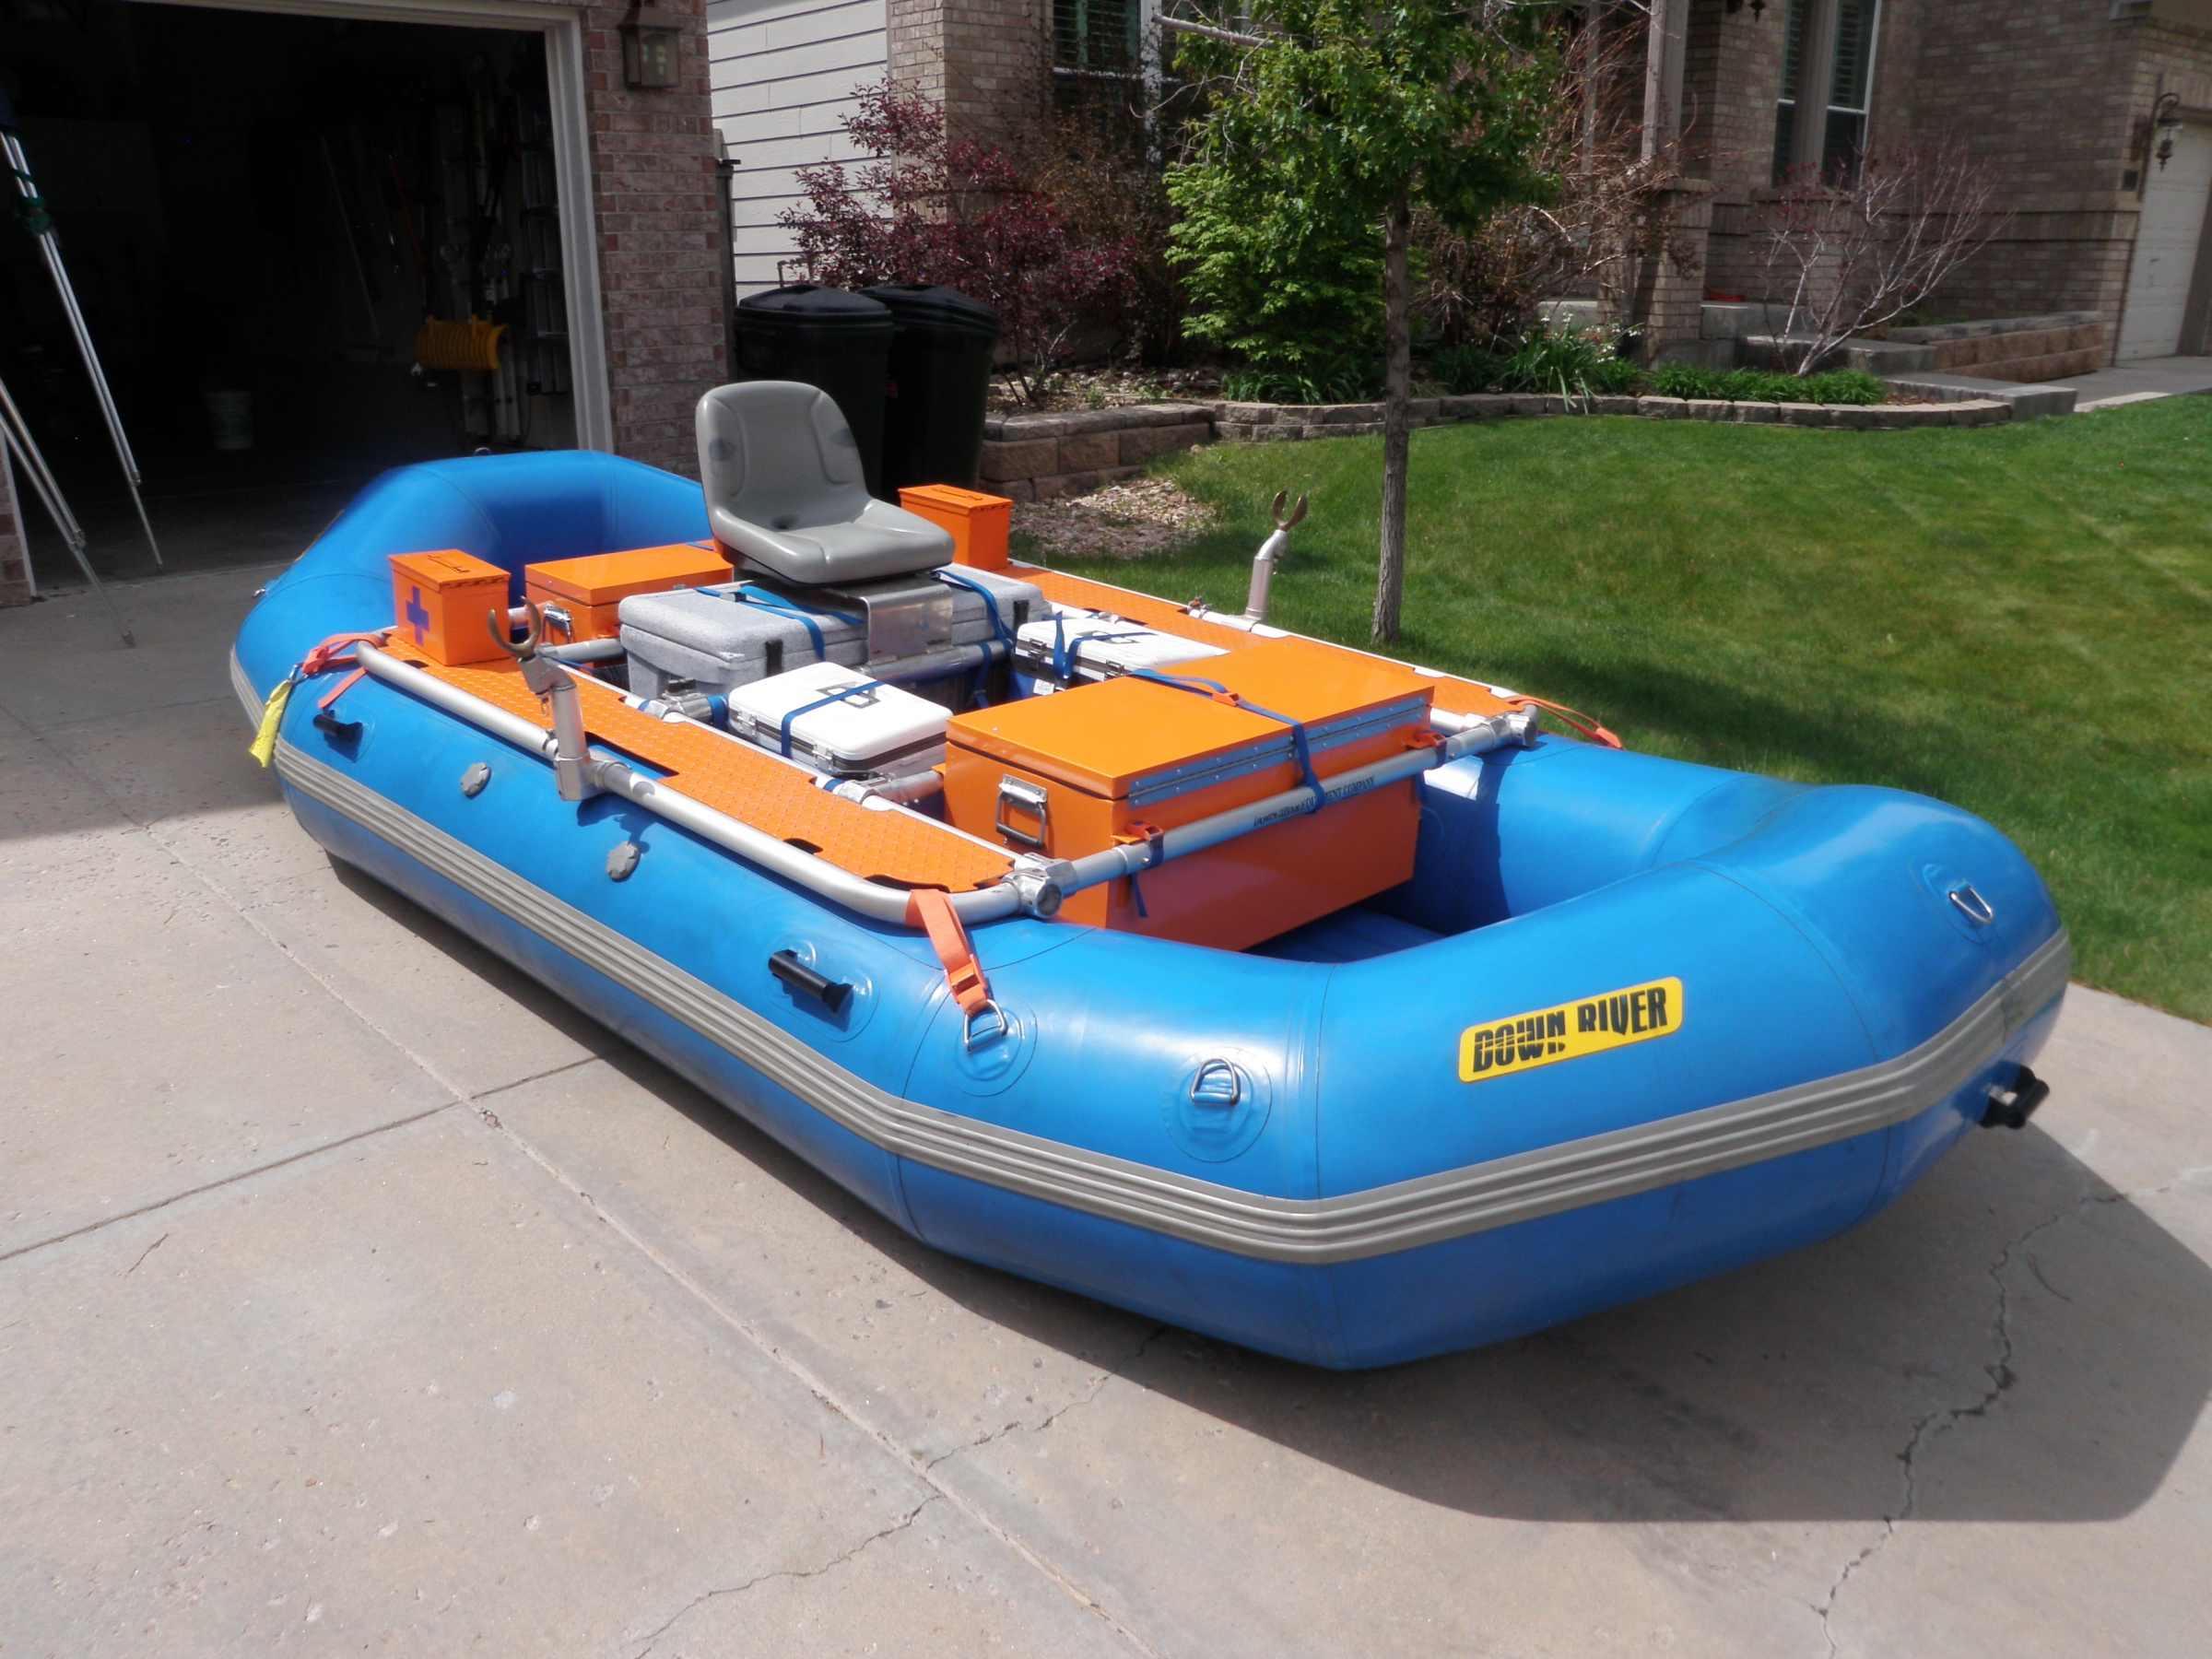 Click image for larger version  Name:03 - Raft.jpg Views:150 Size:1.13 MB ID:10099